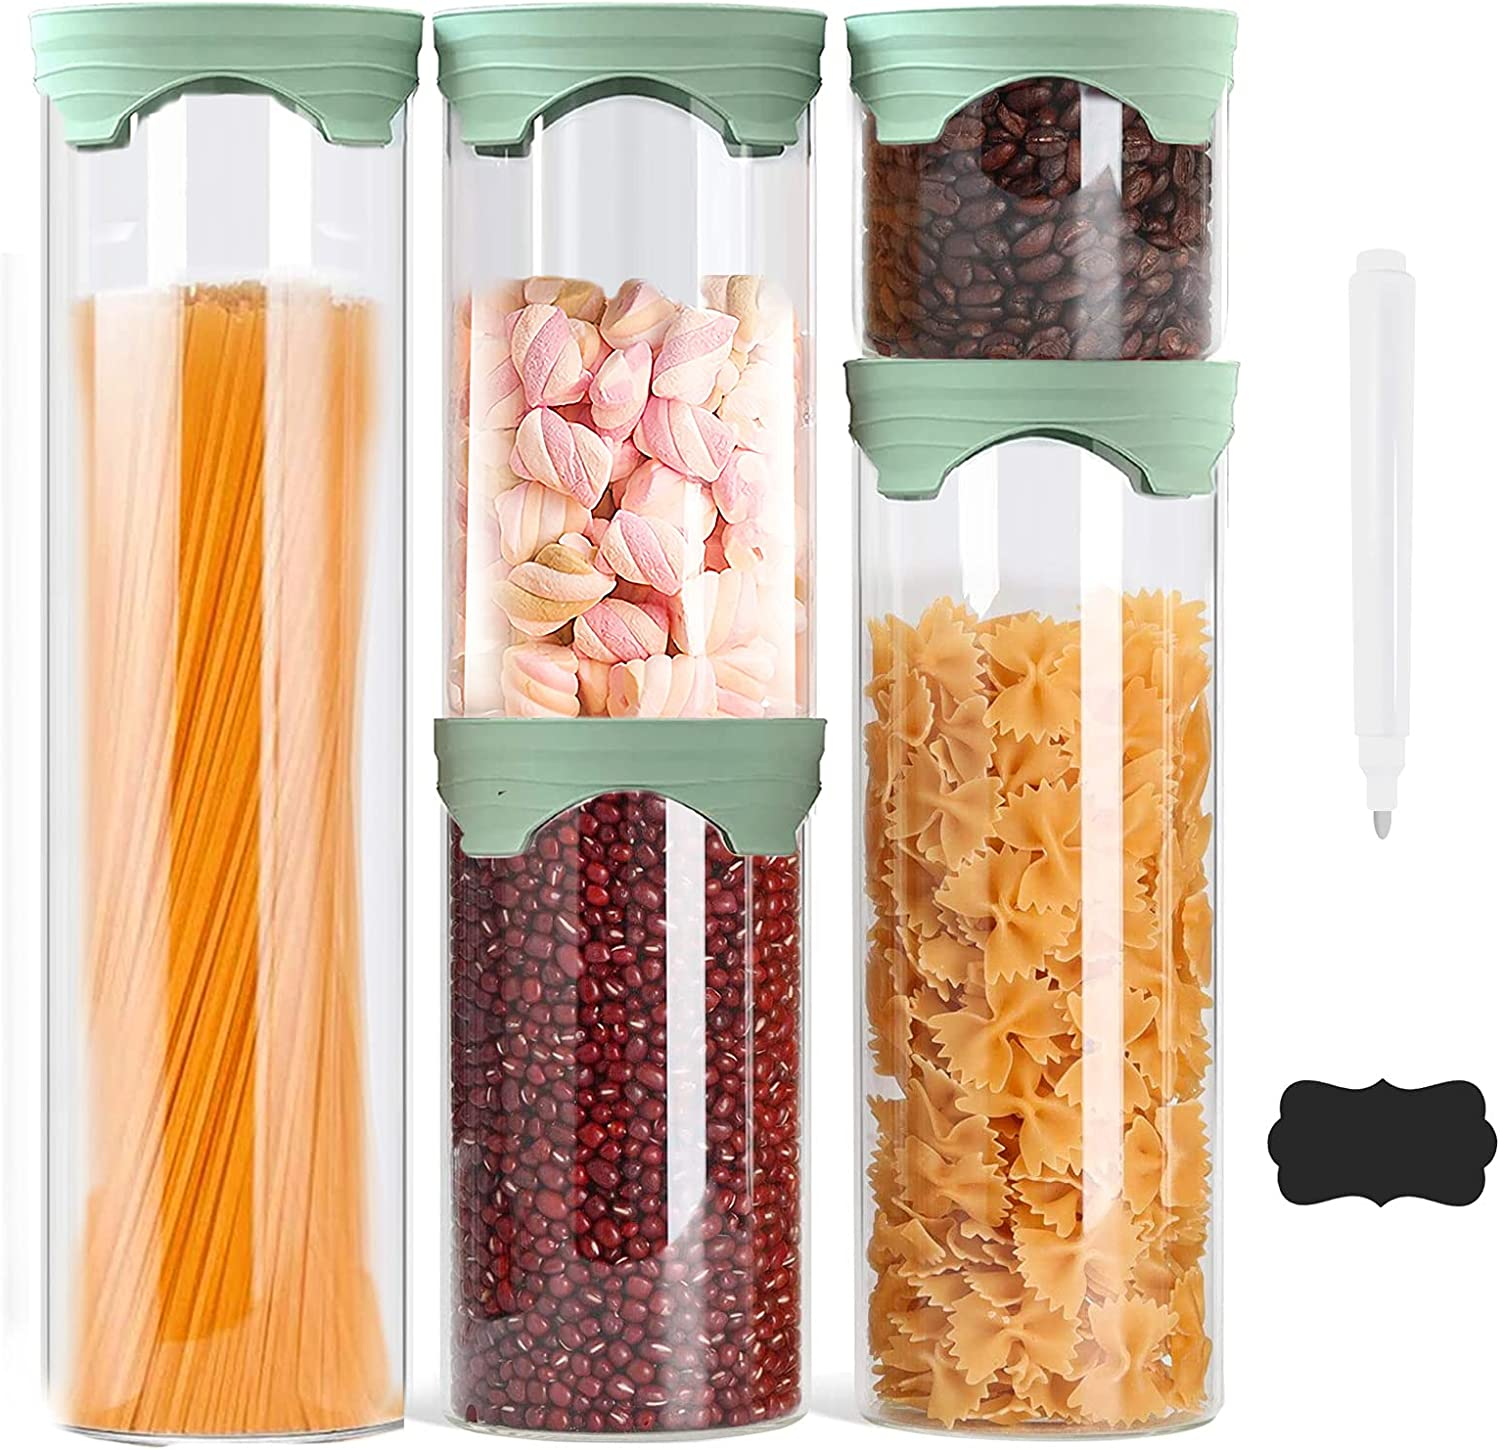 Luvan Glass Canisters Set of 5, Food Storage Jars Containers with Silicone Lid for Candy, Cookie, Rice, Sugar, Coffee,Flour, Pasta, Nuts, Cookie(15oz, 33oz, 50oz, 67oz)